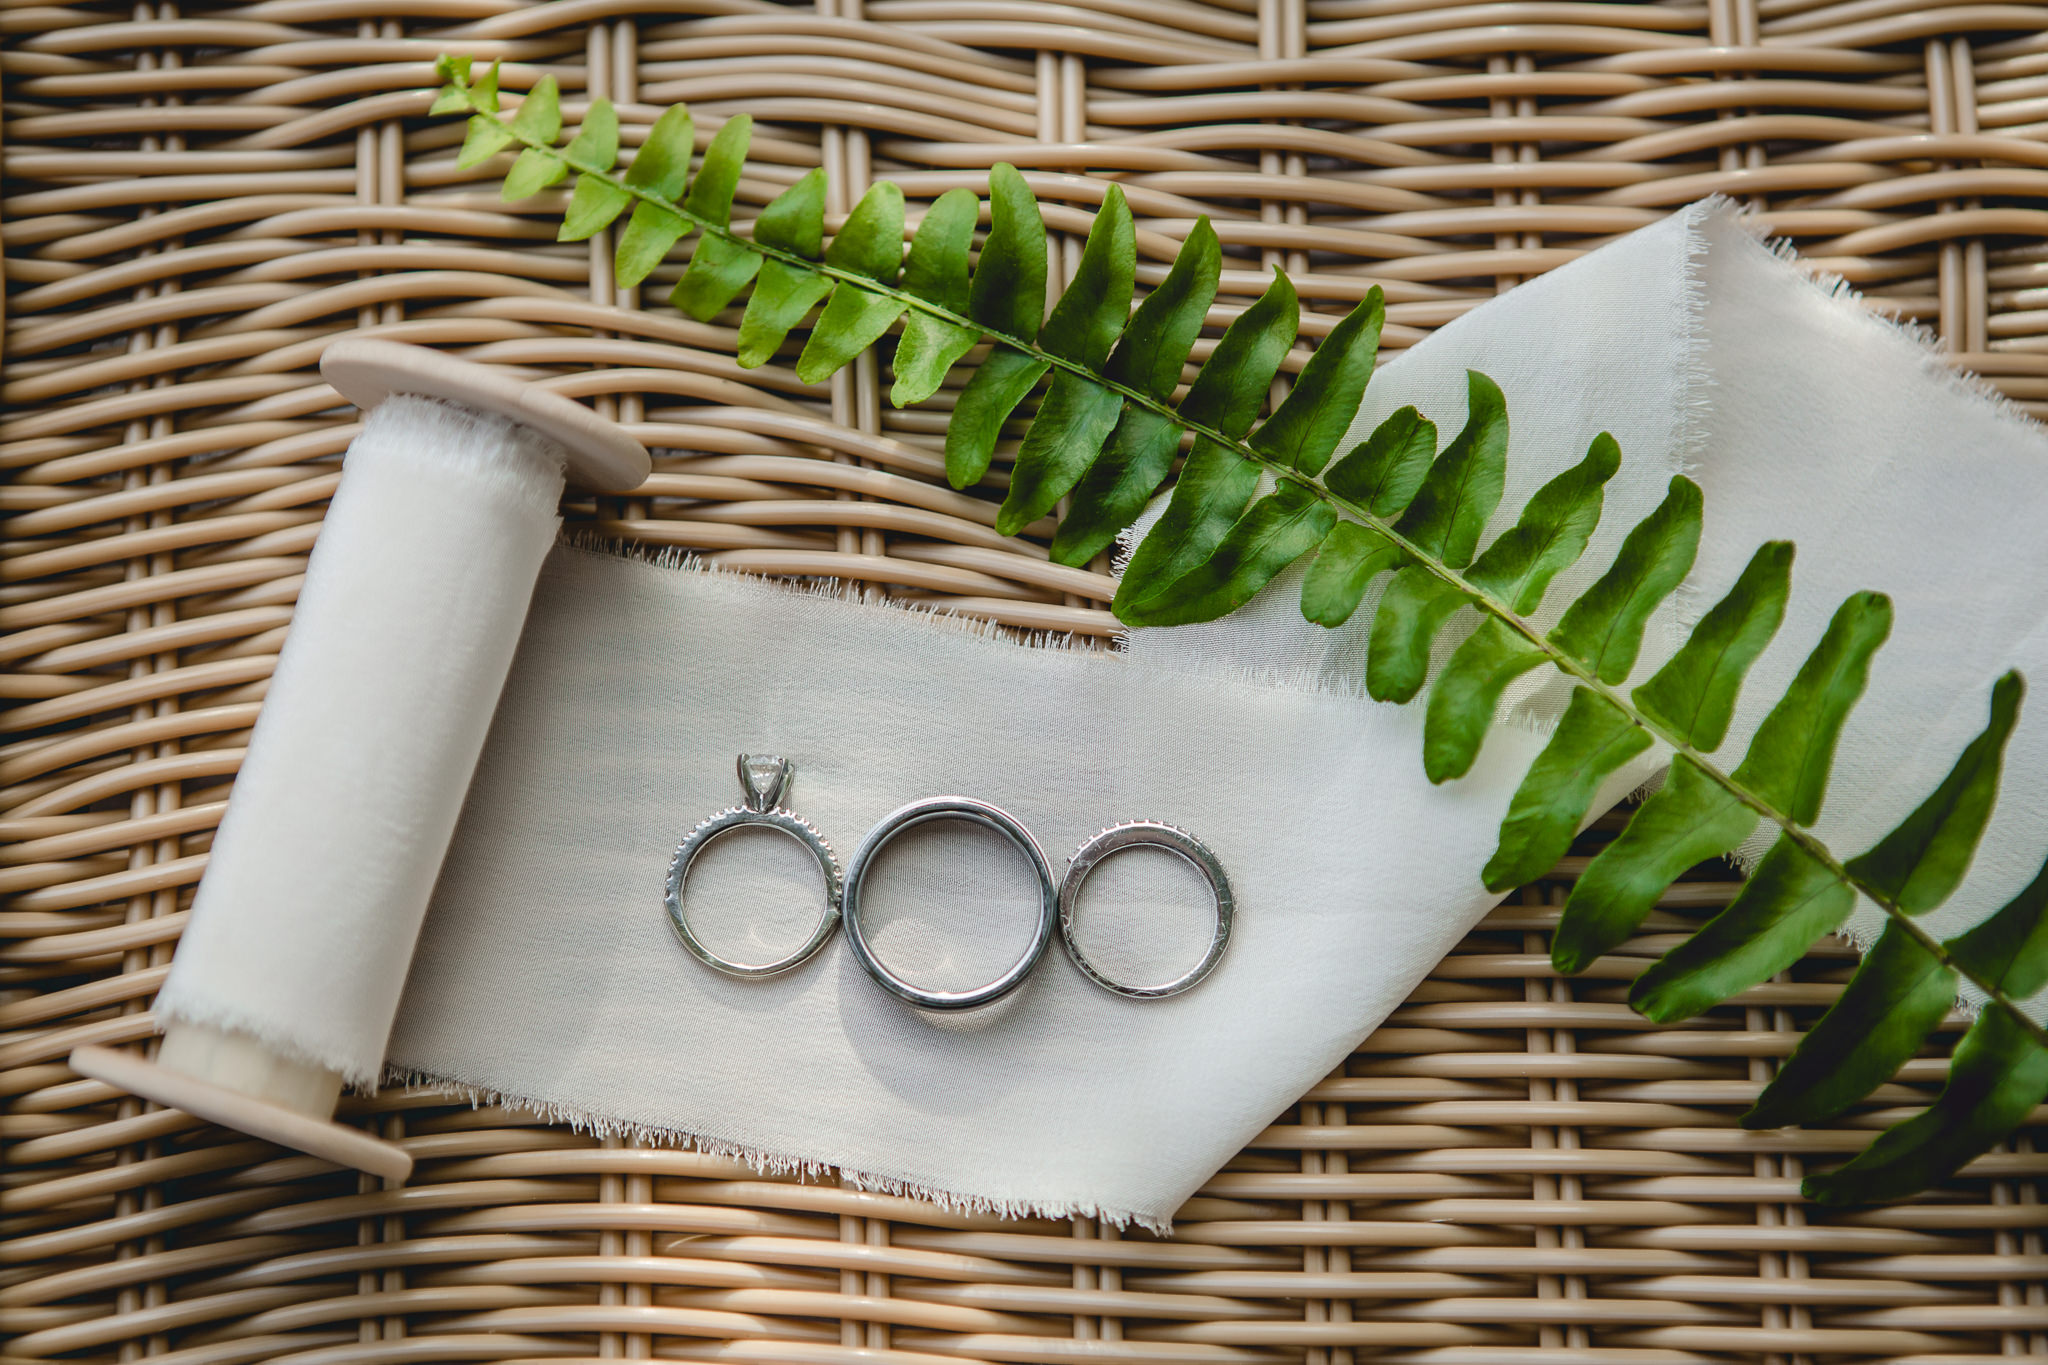 Wedding bands and engagement ring on a spool of ribbon with a green fern